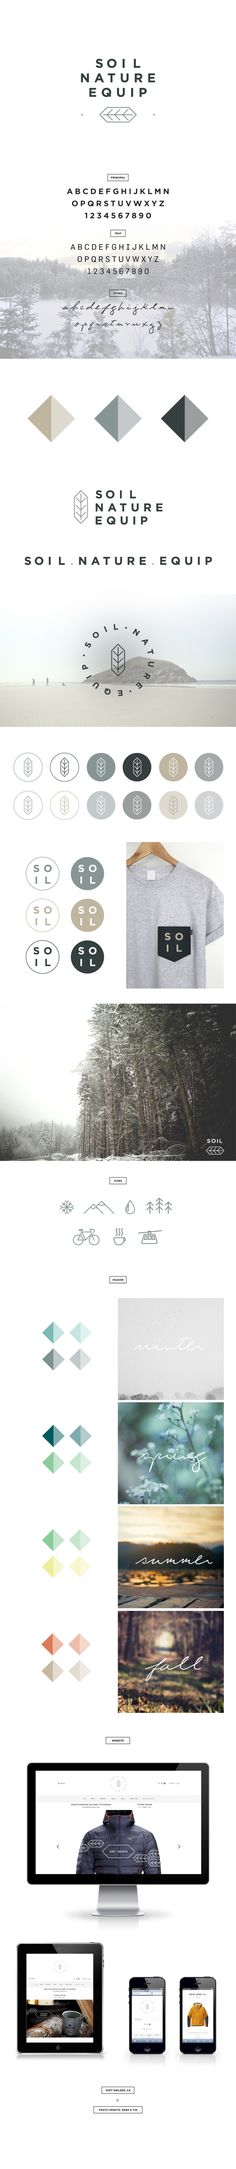 SOIL NATURE EQUIP on Behance